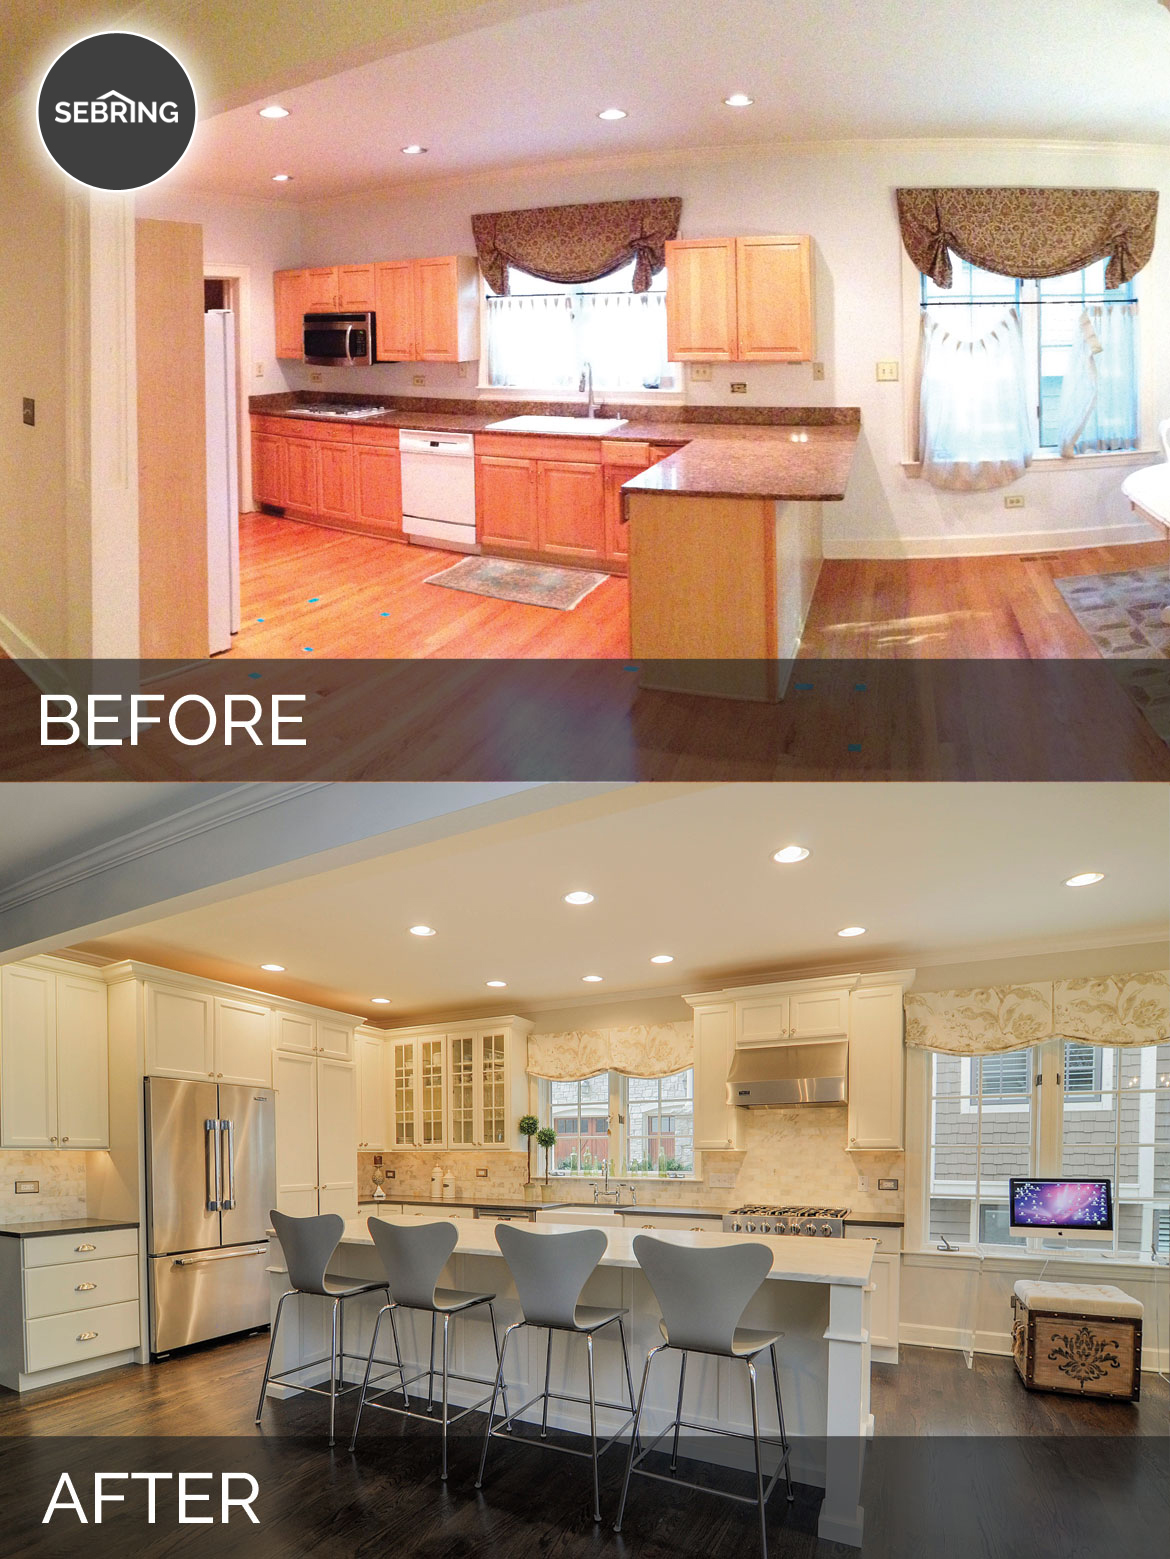 Ben ellen 39 s kitchen before after pictures home Before and after interior design projects